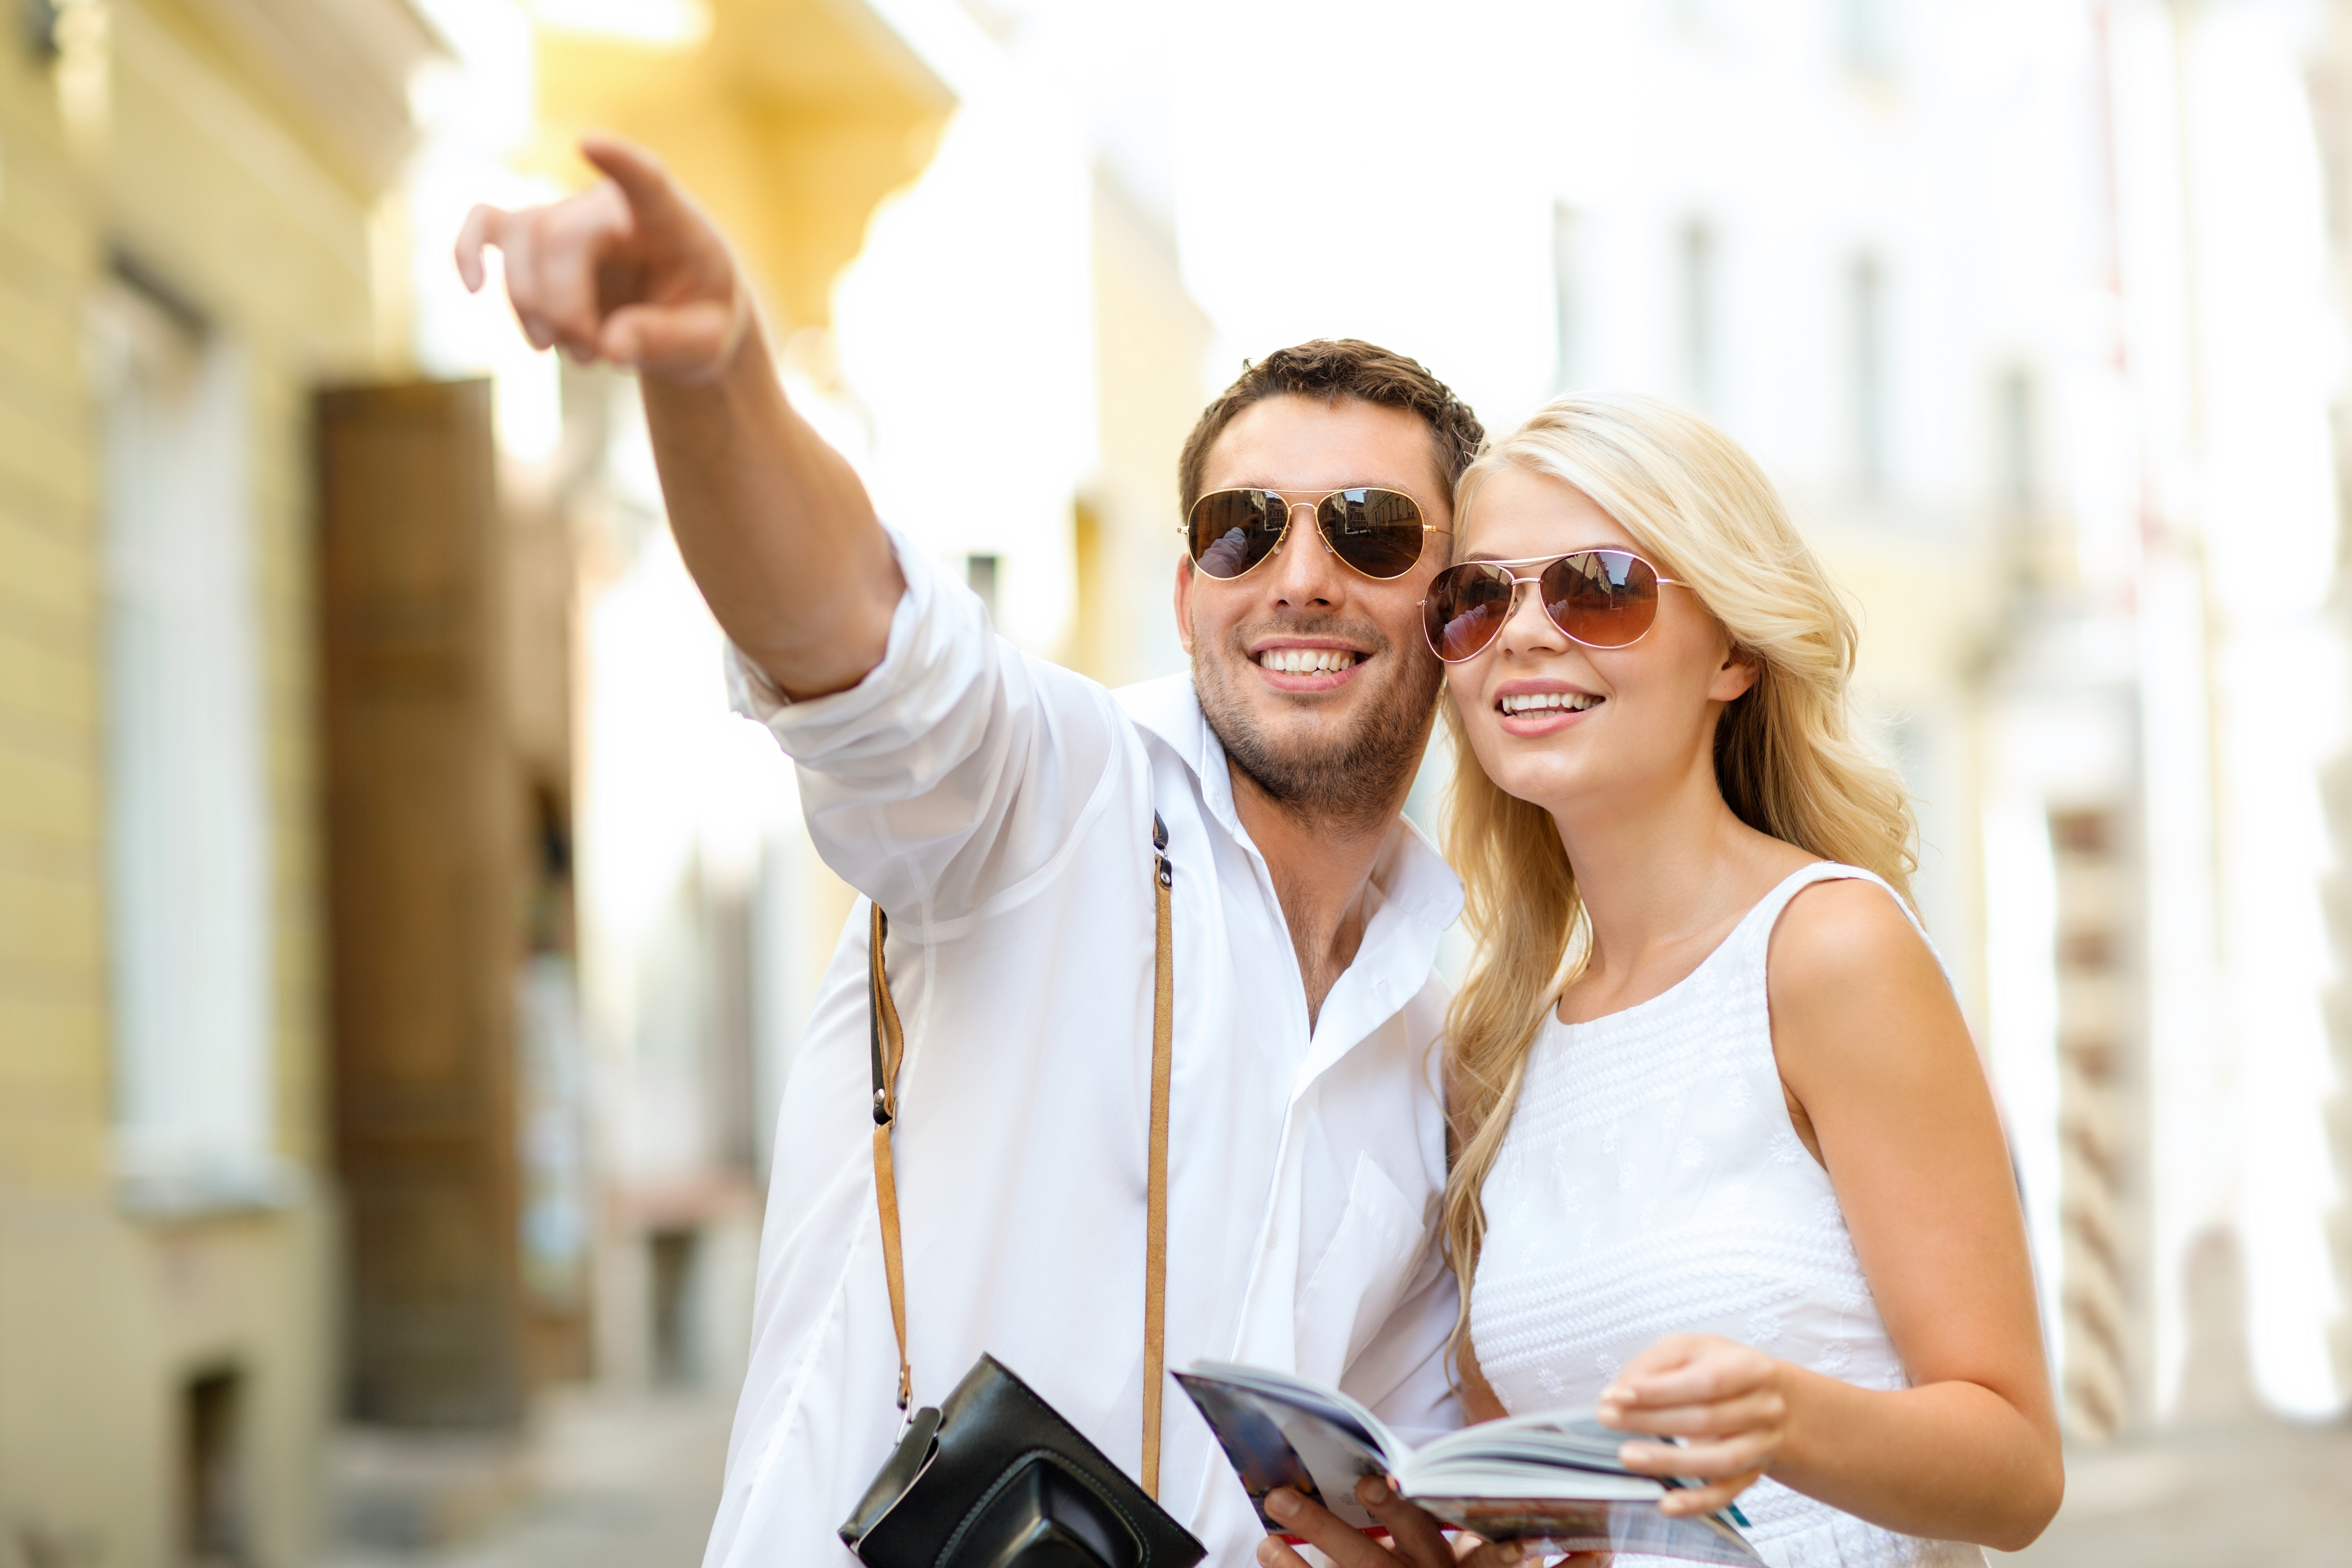 bigstock-summer-holidays-dating-city--55